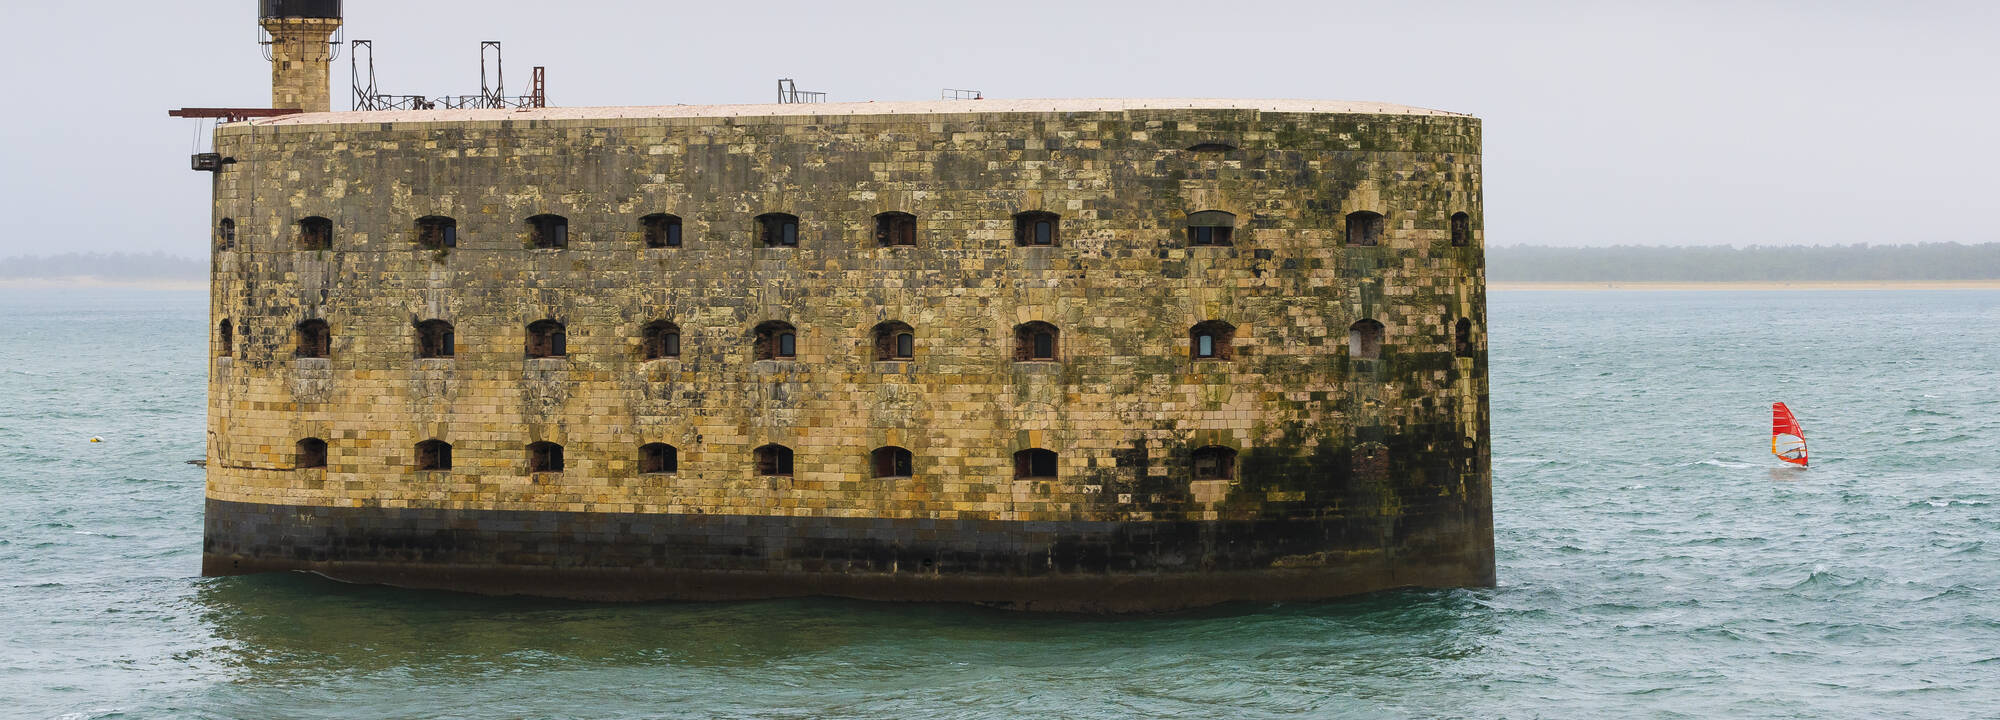 Office Tourisme Aix Les Bains Fort Boyard The Legendary Stone Vessel In Rochefort Ocean